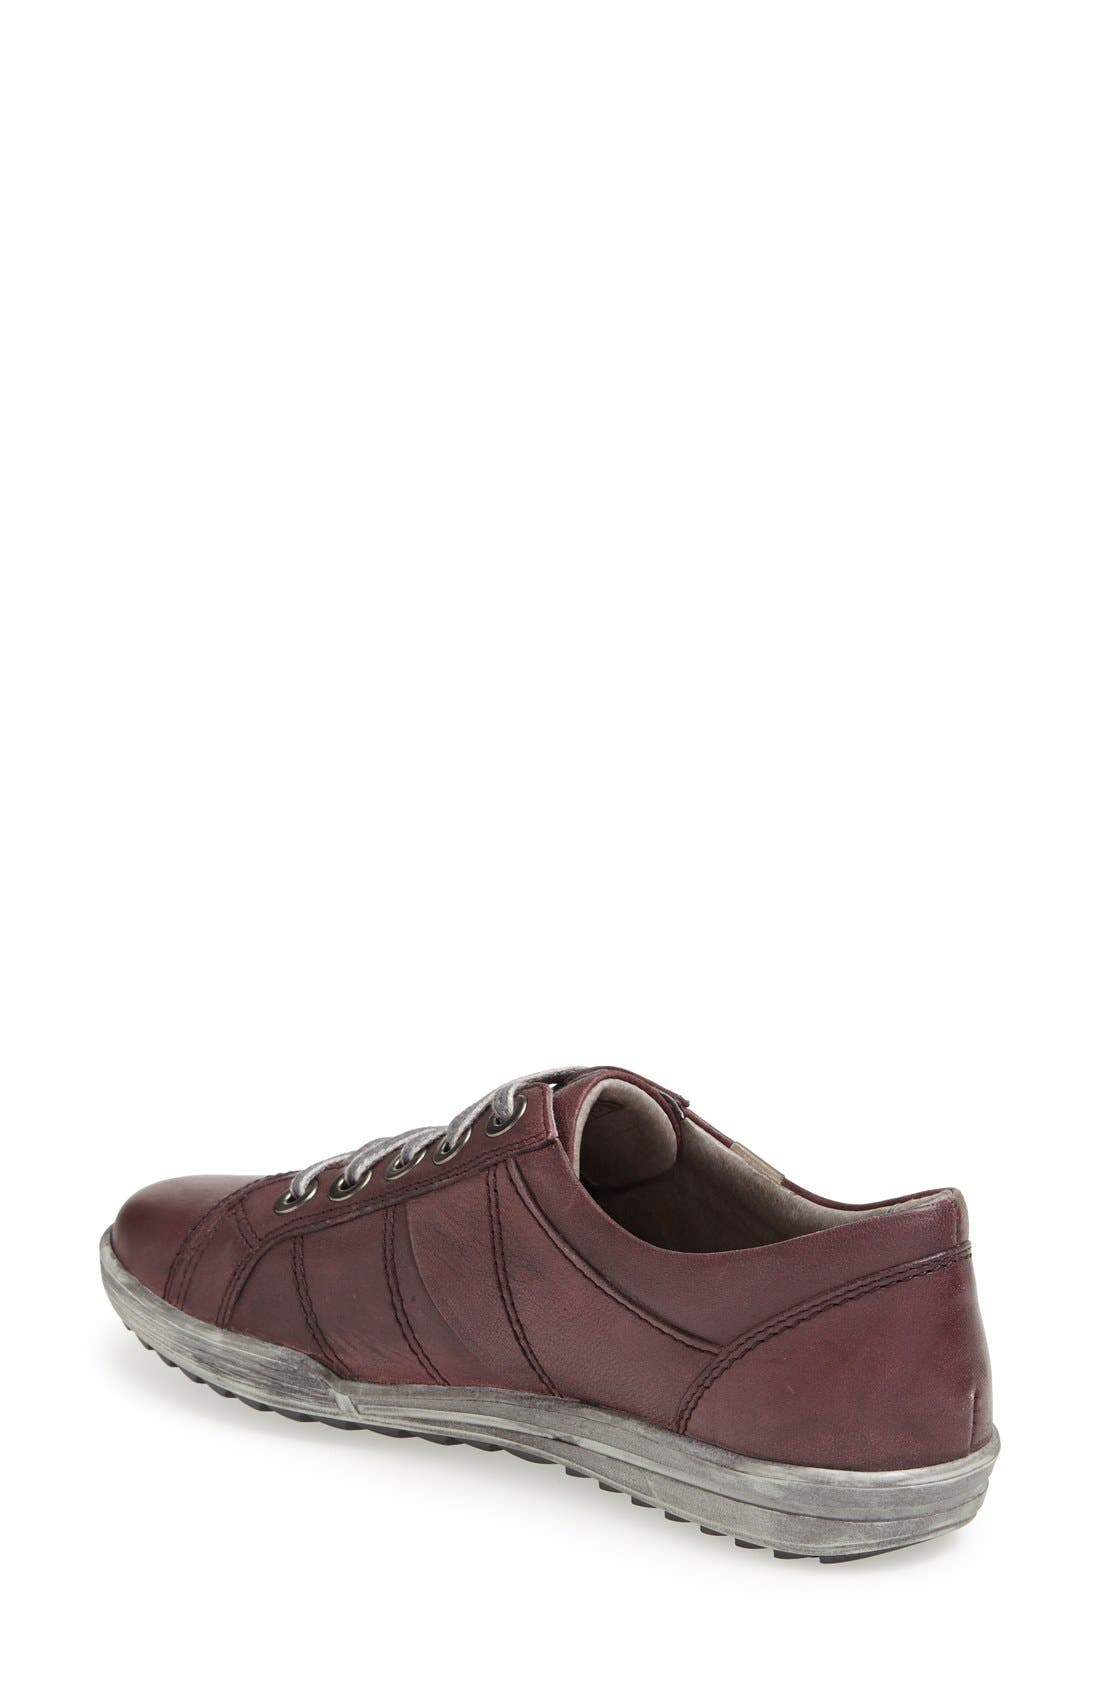 'Dany 05' Leather Sneaker,                             Alternate thumbnail 51, color,